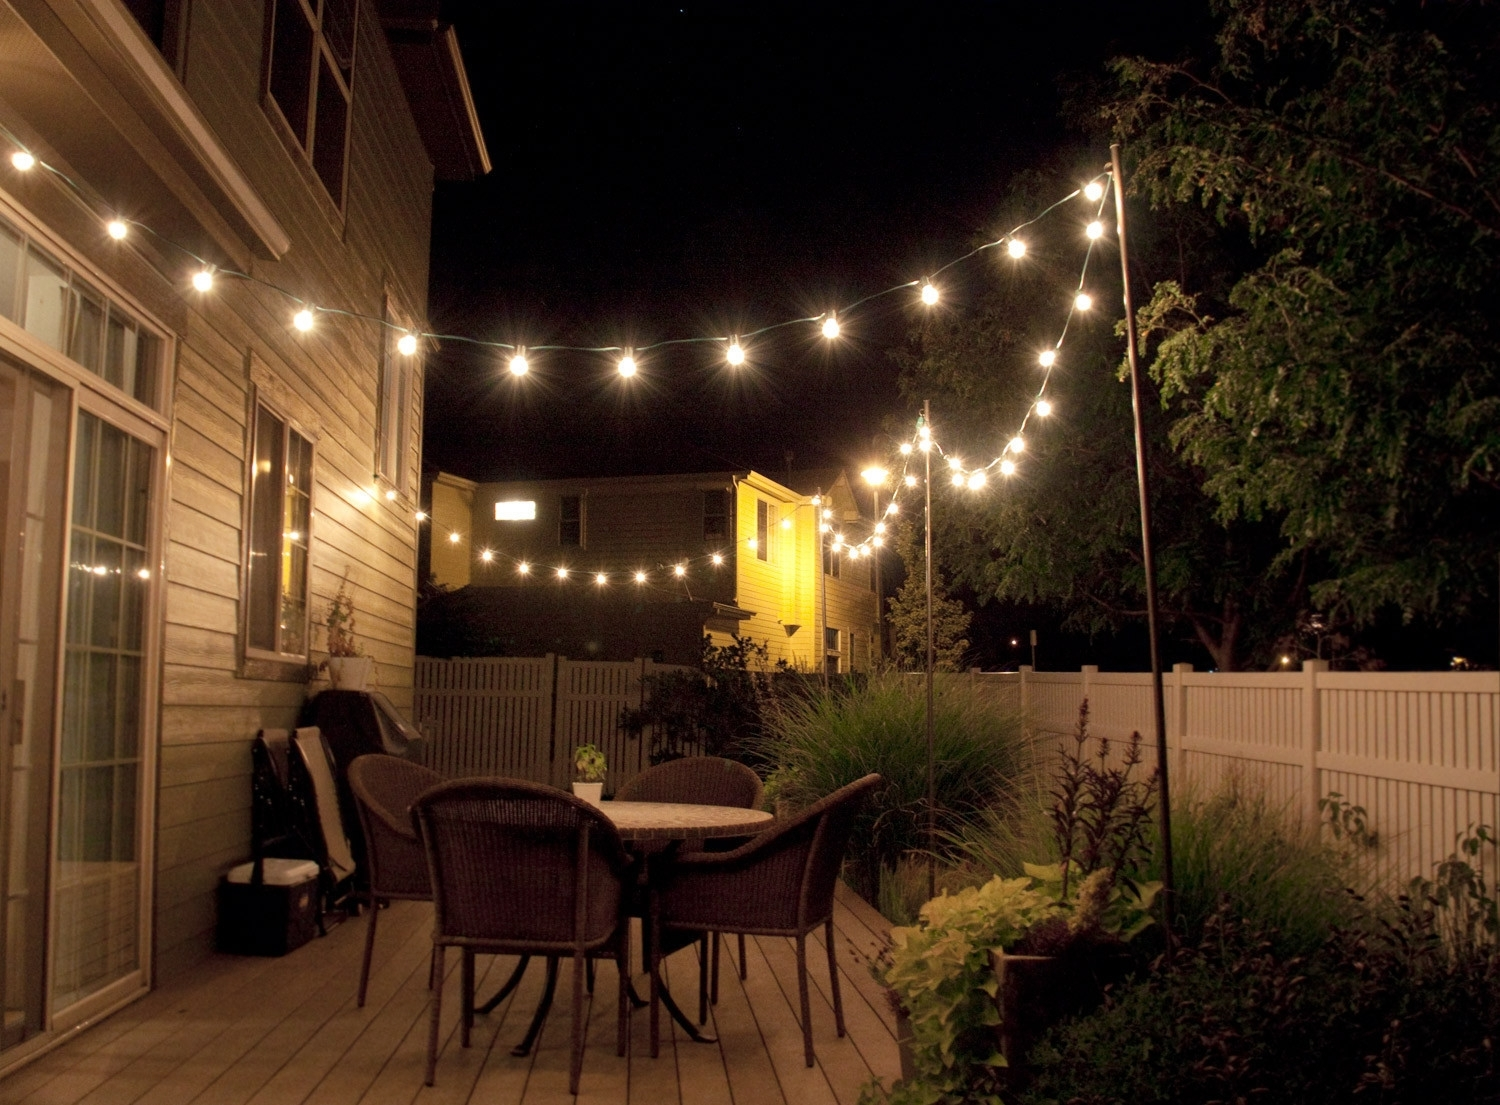 Pottery Barn String Lights Reviews   Lights Design Ideas Intended For Outdoor Lanterns At Pottery Barn (Photo 13 of 20)